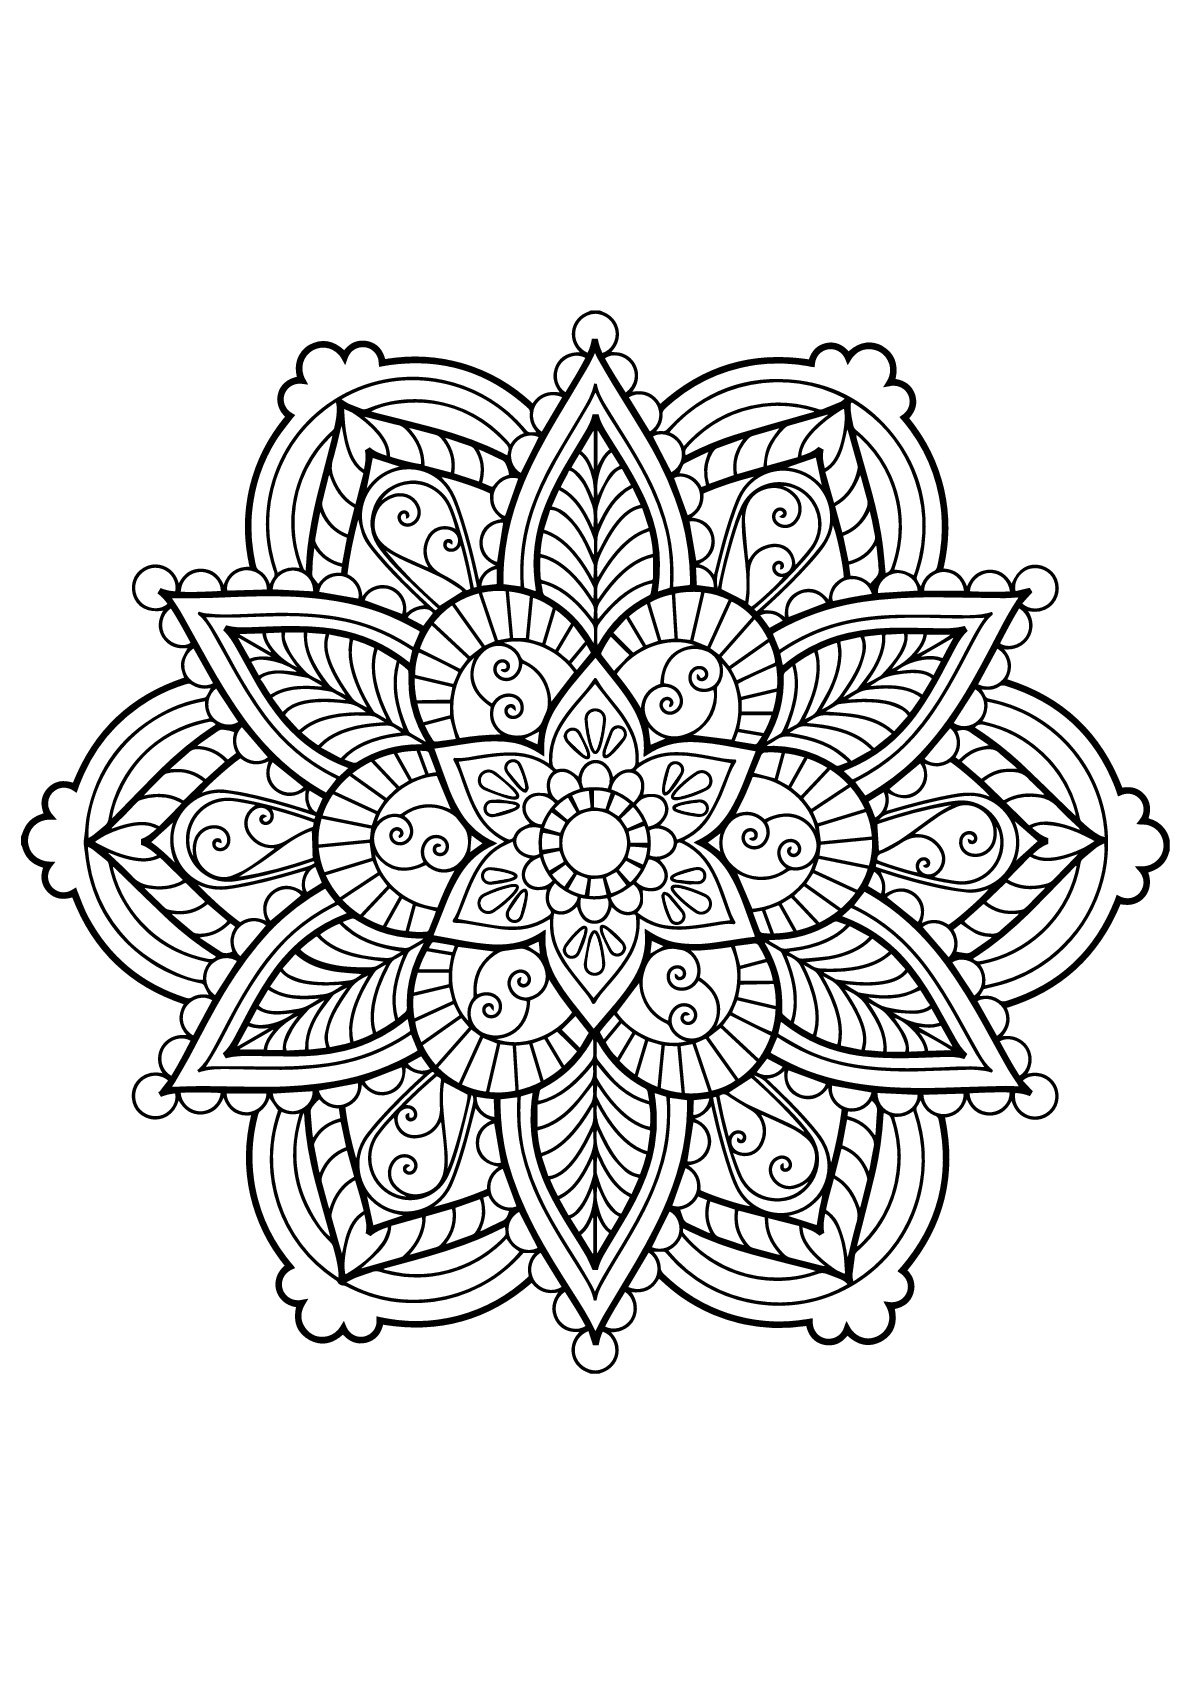 Mandala From Free Coloring Books For Adults 28 - M&alas Adult - Free Printable Mandalas